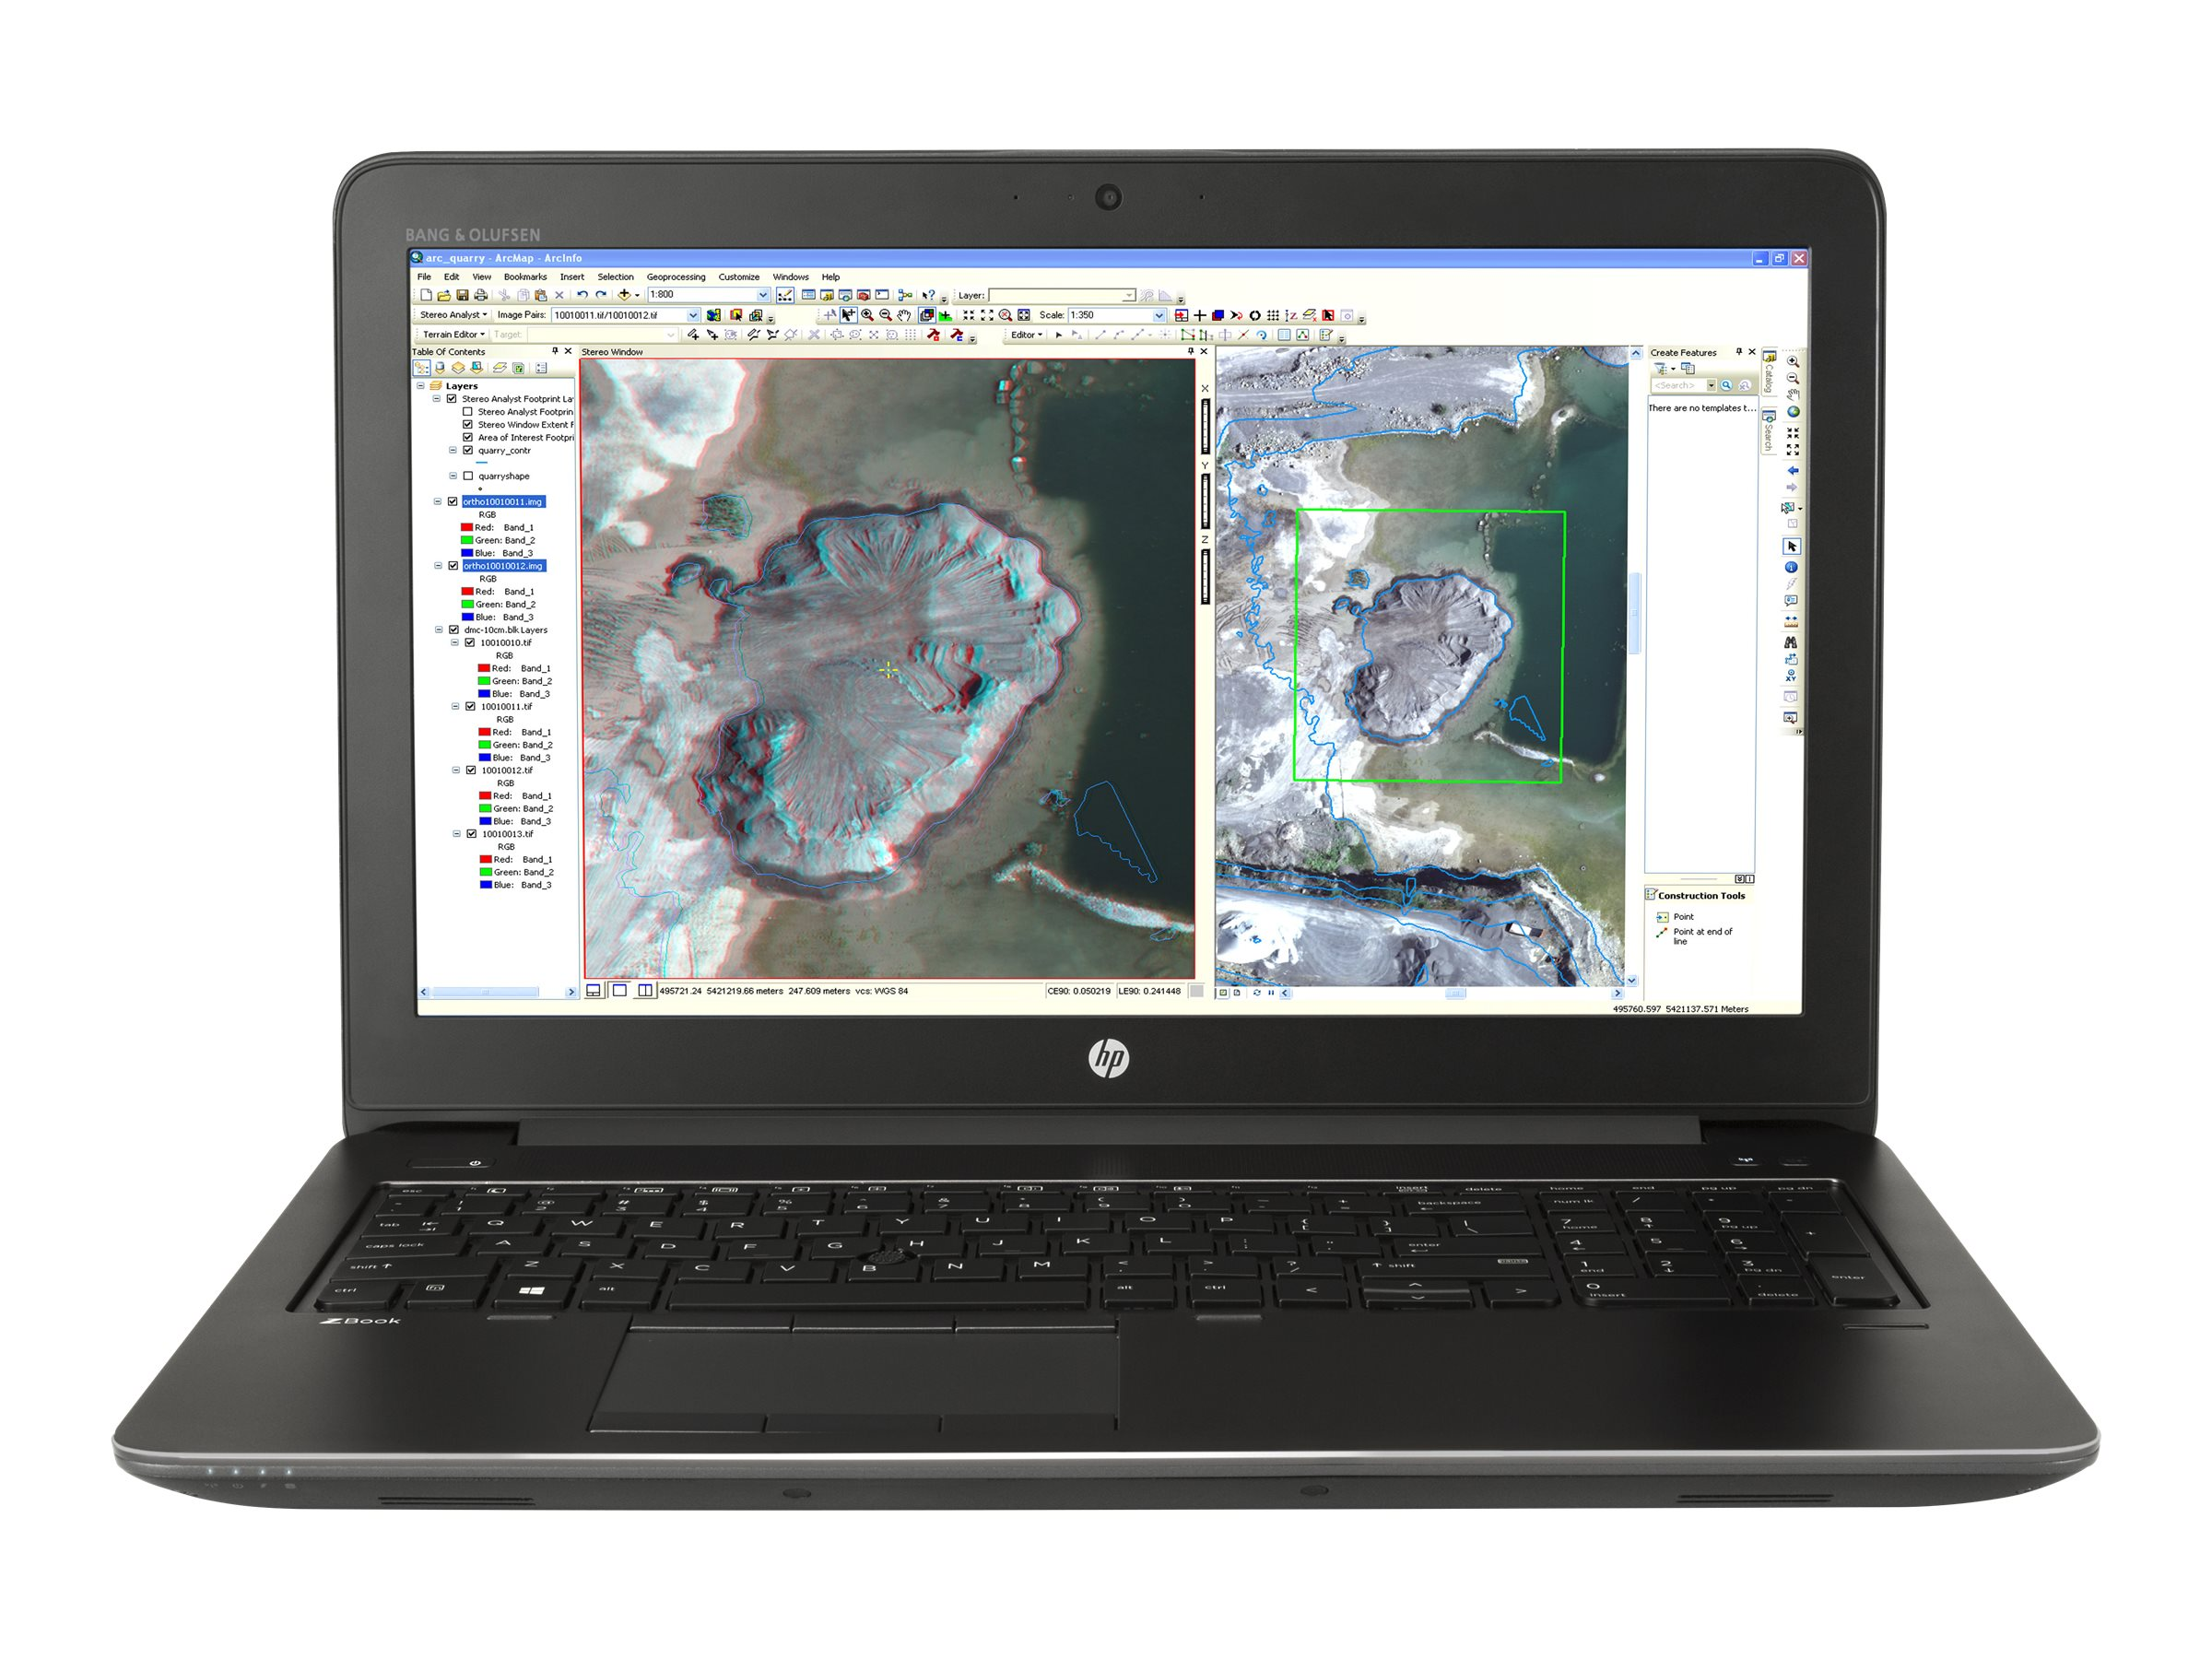 HP ZBook 15 G3 Core i7-6820HQ 2.7GHz 16GB 512GB ac BT FR WC 9C M2000M 15.6 FHD W7P64-W10P